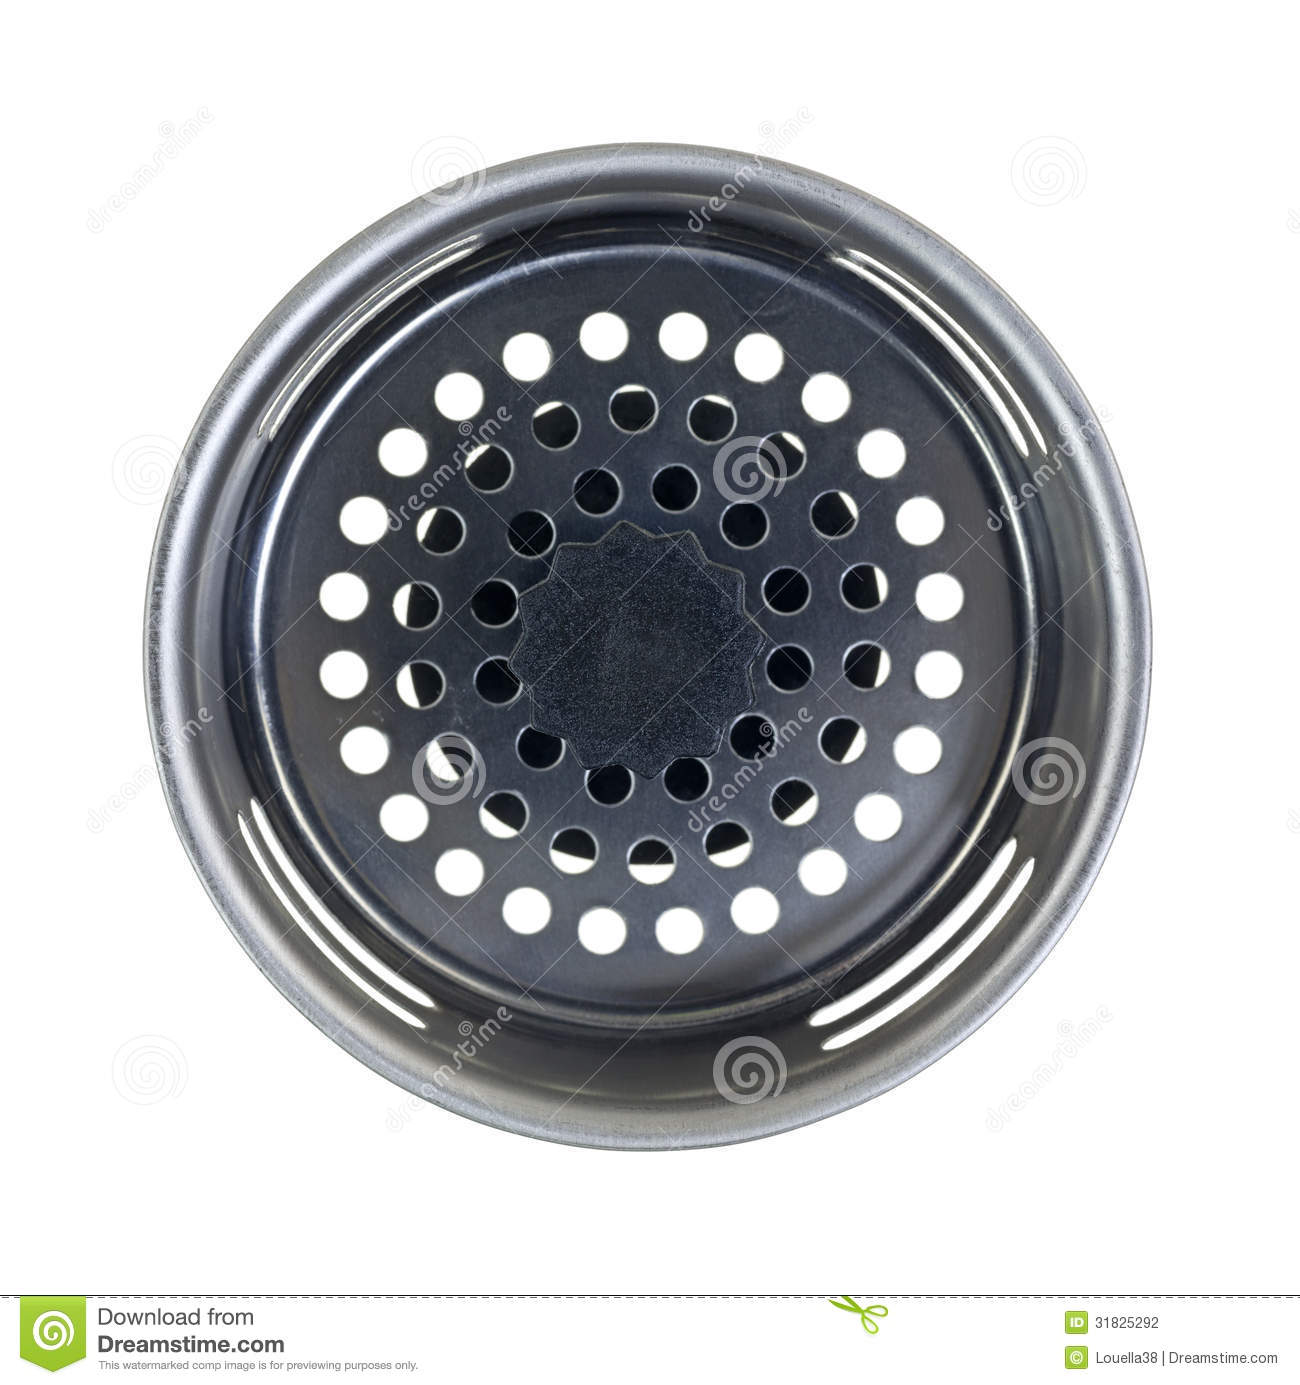 Drain Plug Top View Stock Photo Image Of Trap Bottom